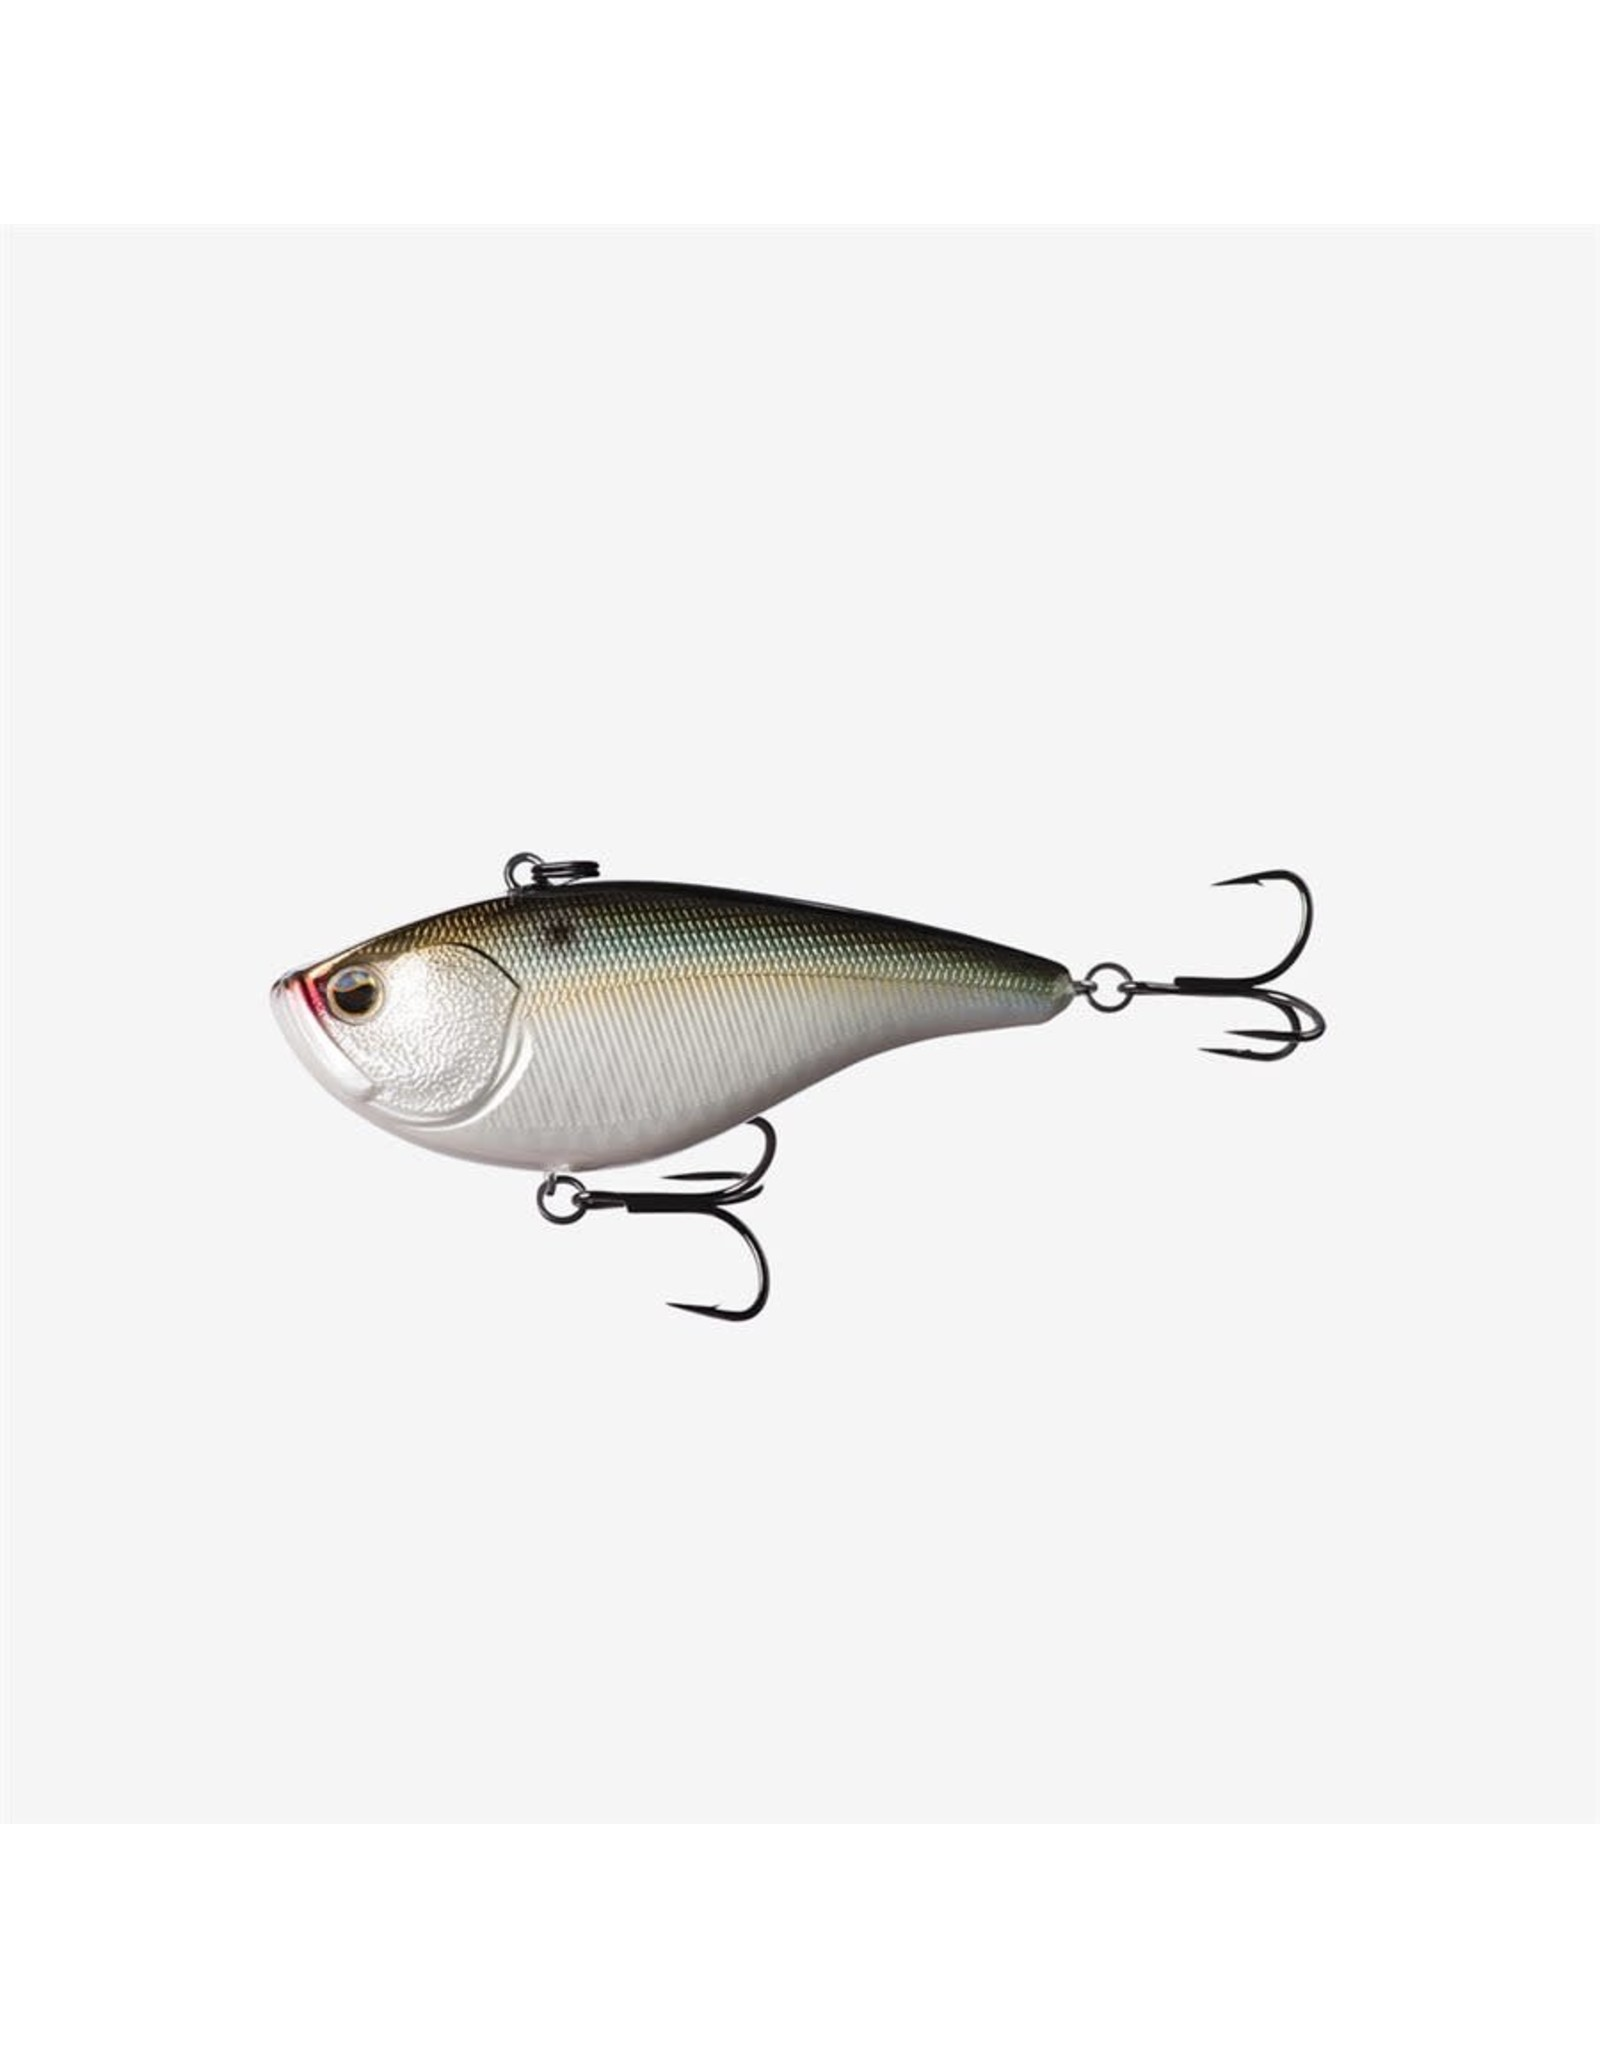 13 Fishing 13 Fishing Magic Man Single Pitch Lipless Crankbait